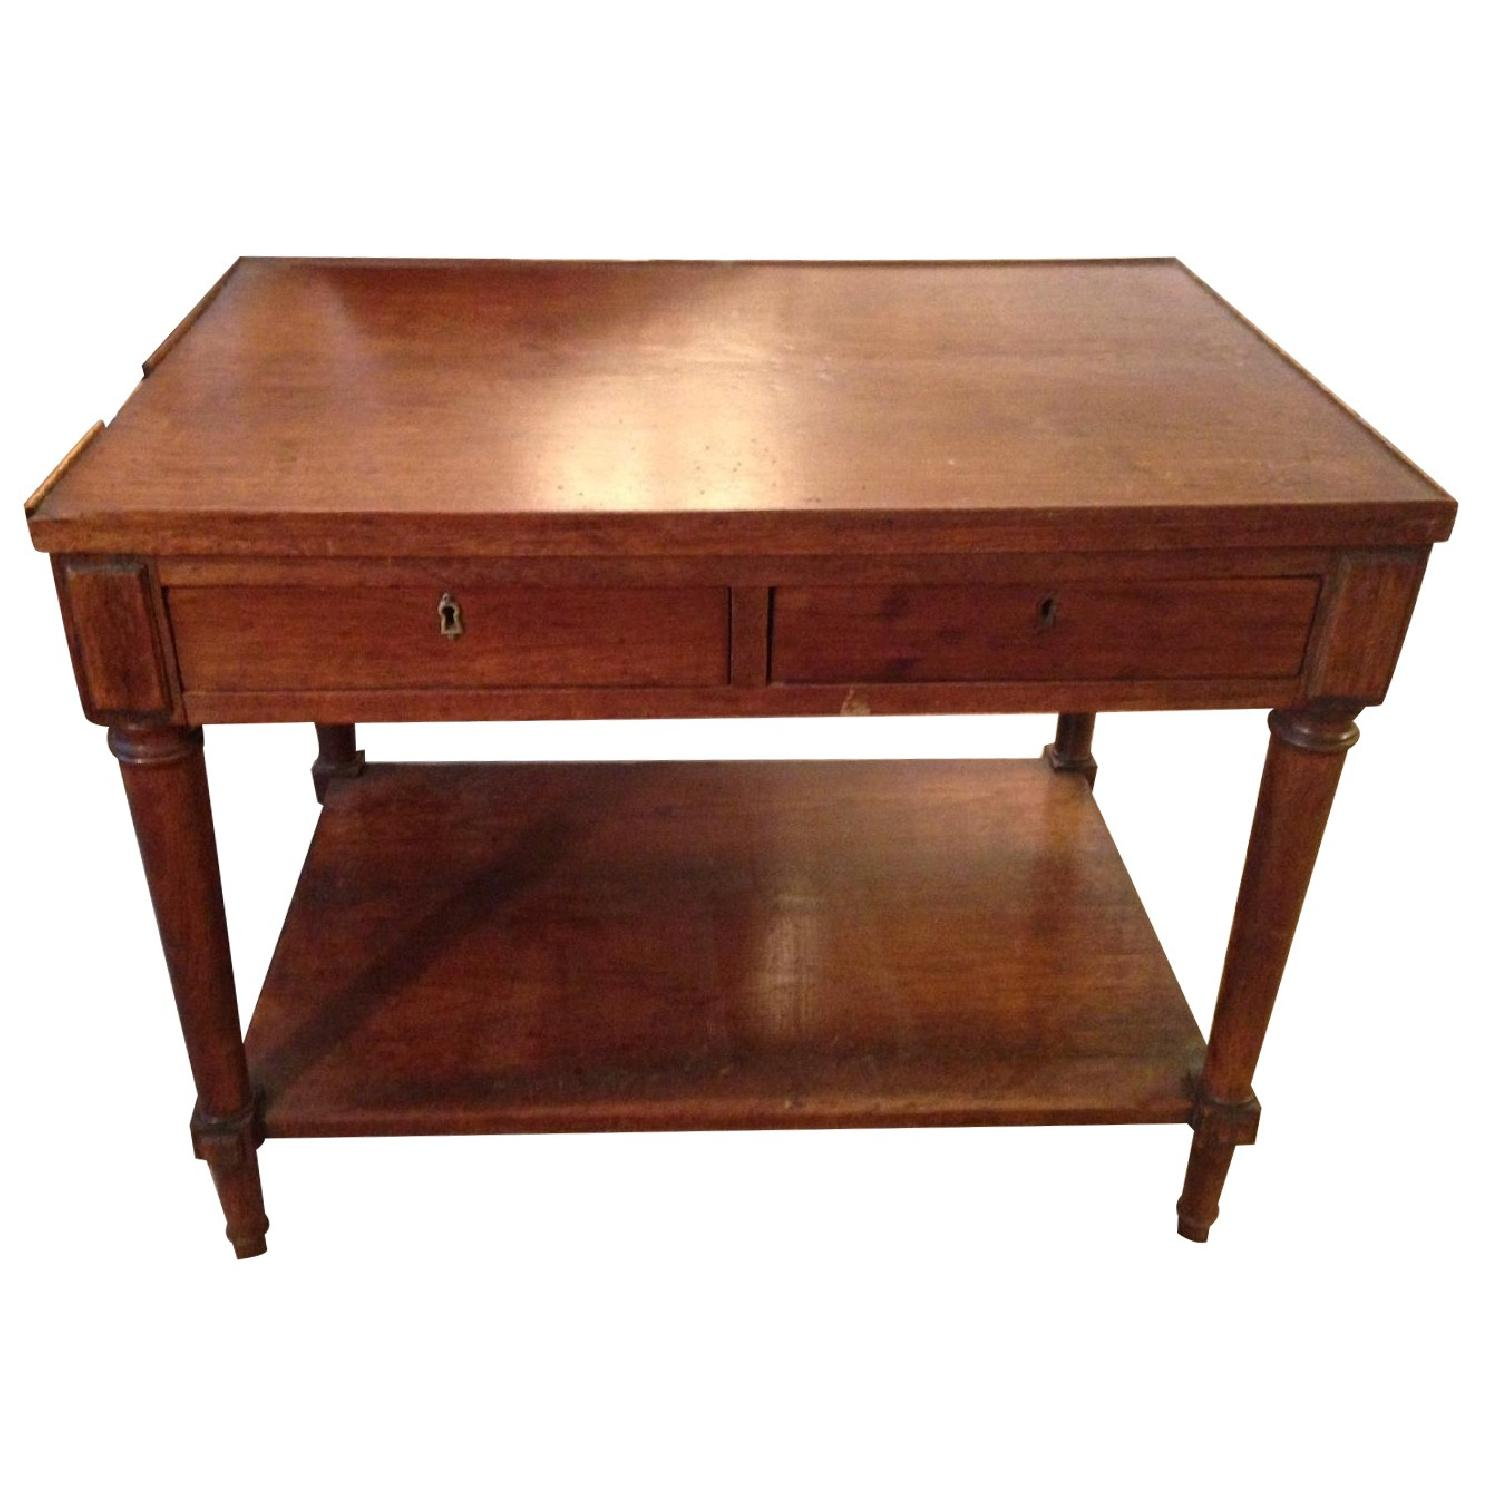 Early 20th Century French Directoire Style Mahogany Side Tables - 2 Available - image-0